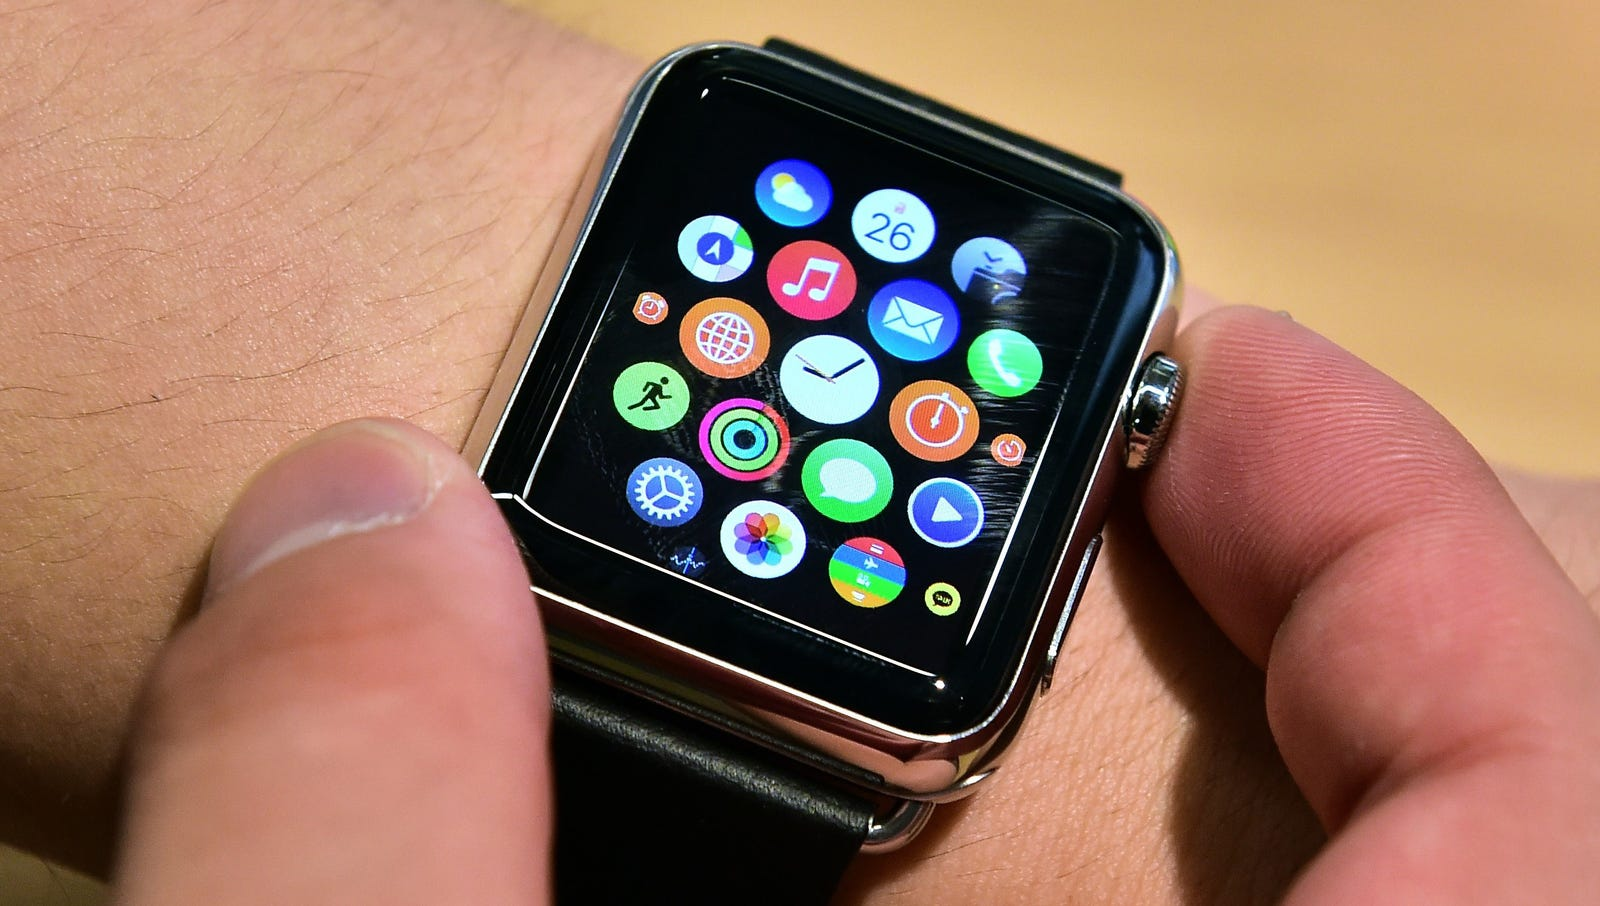 Apple Watch: Apple's promotional campaign warned consumers that if the watch wasn't a resounding success, they'd have no choice but to make a new device that would burrow deep into the user's brainstem or internal organs.